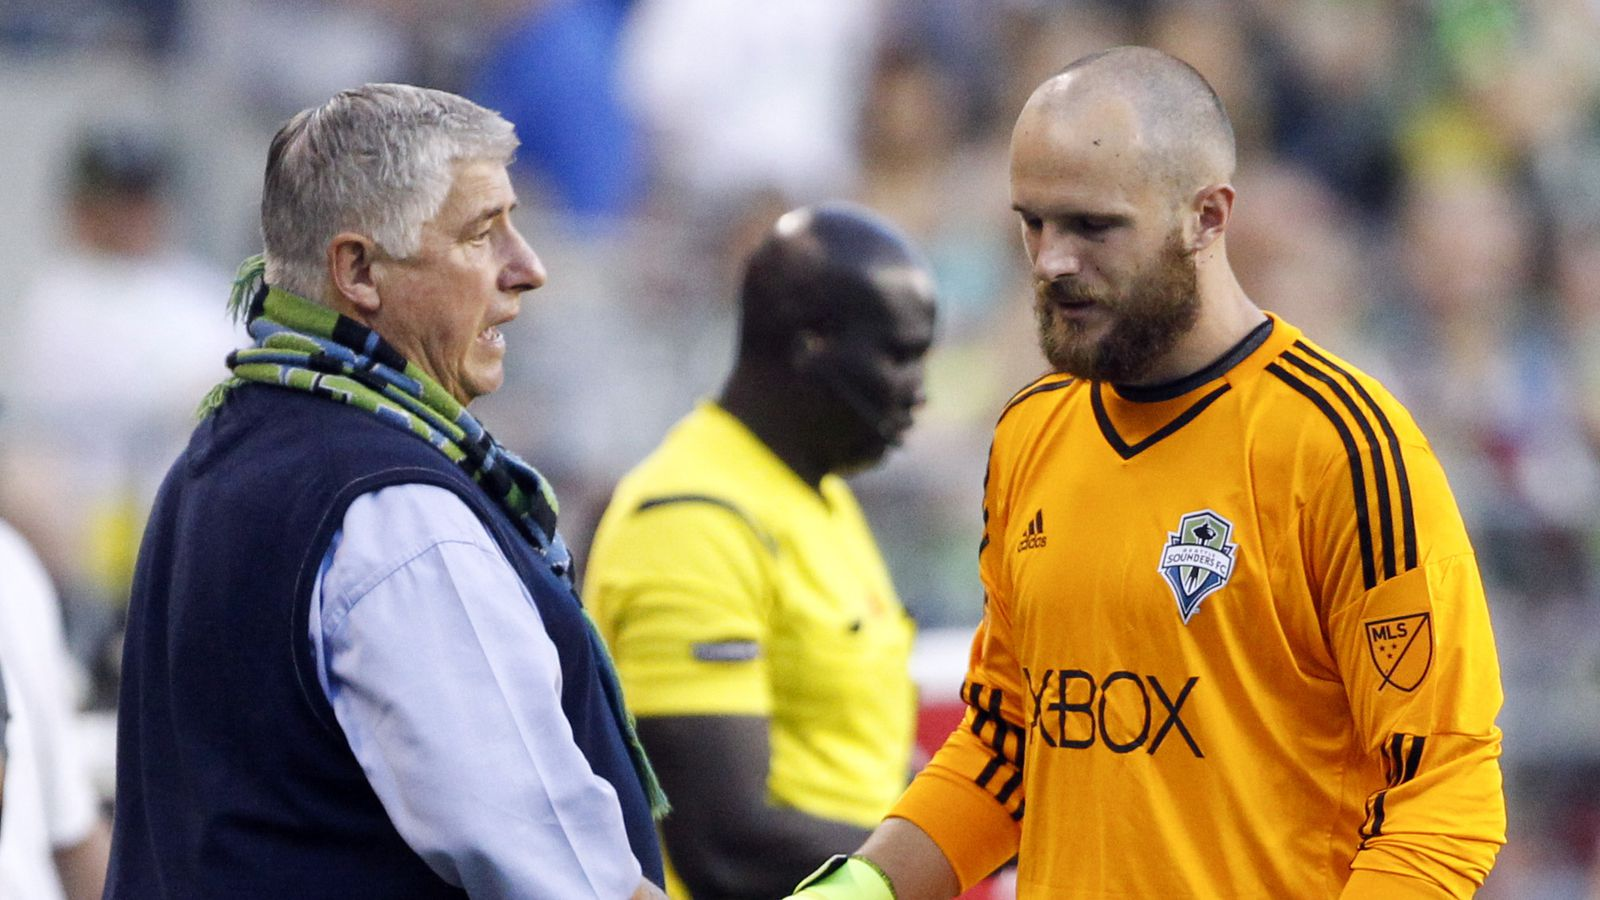 Stefan Frei unlikely to face Chicago Fire, but Sounders optimistic he won't be out long